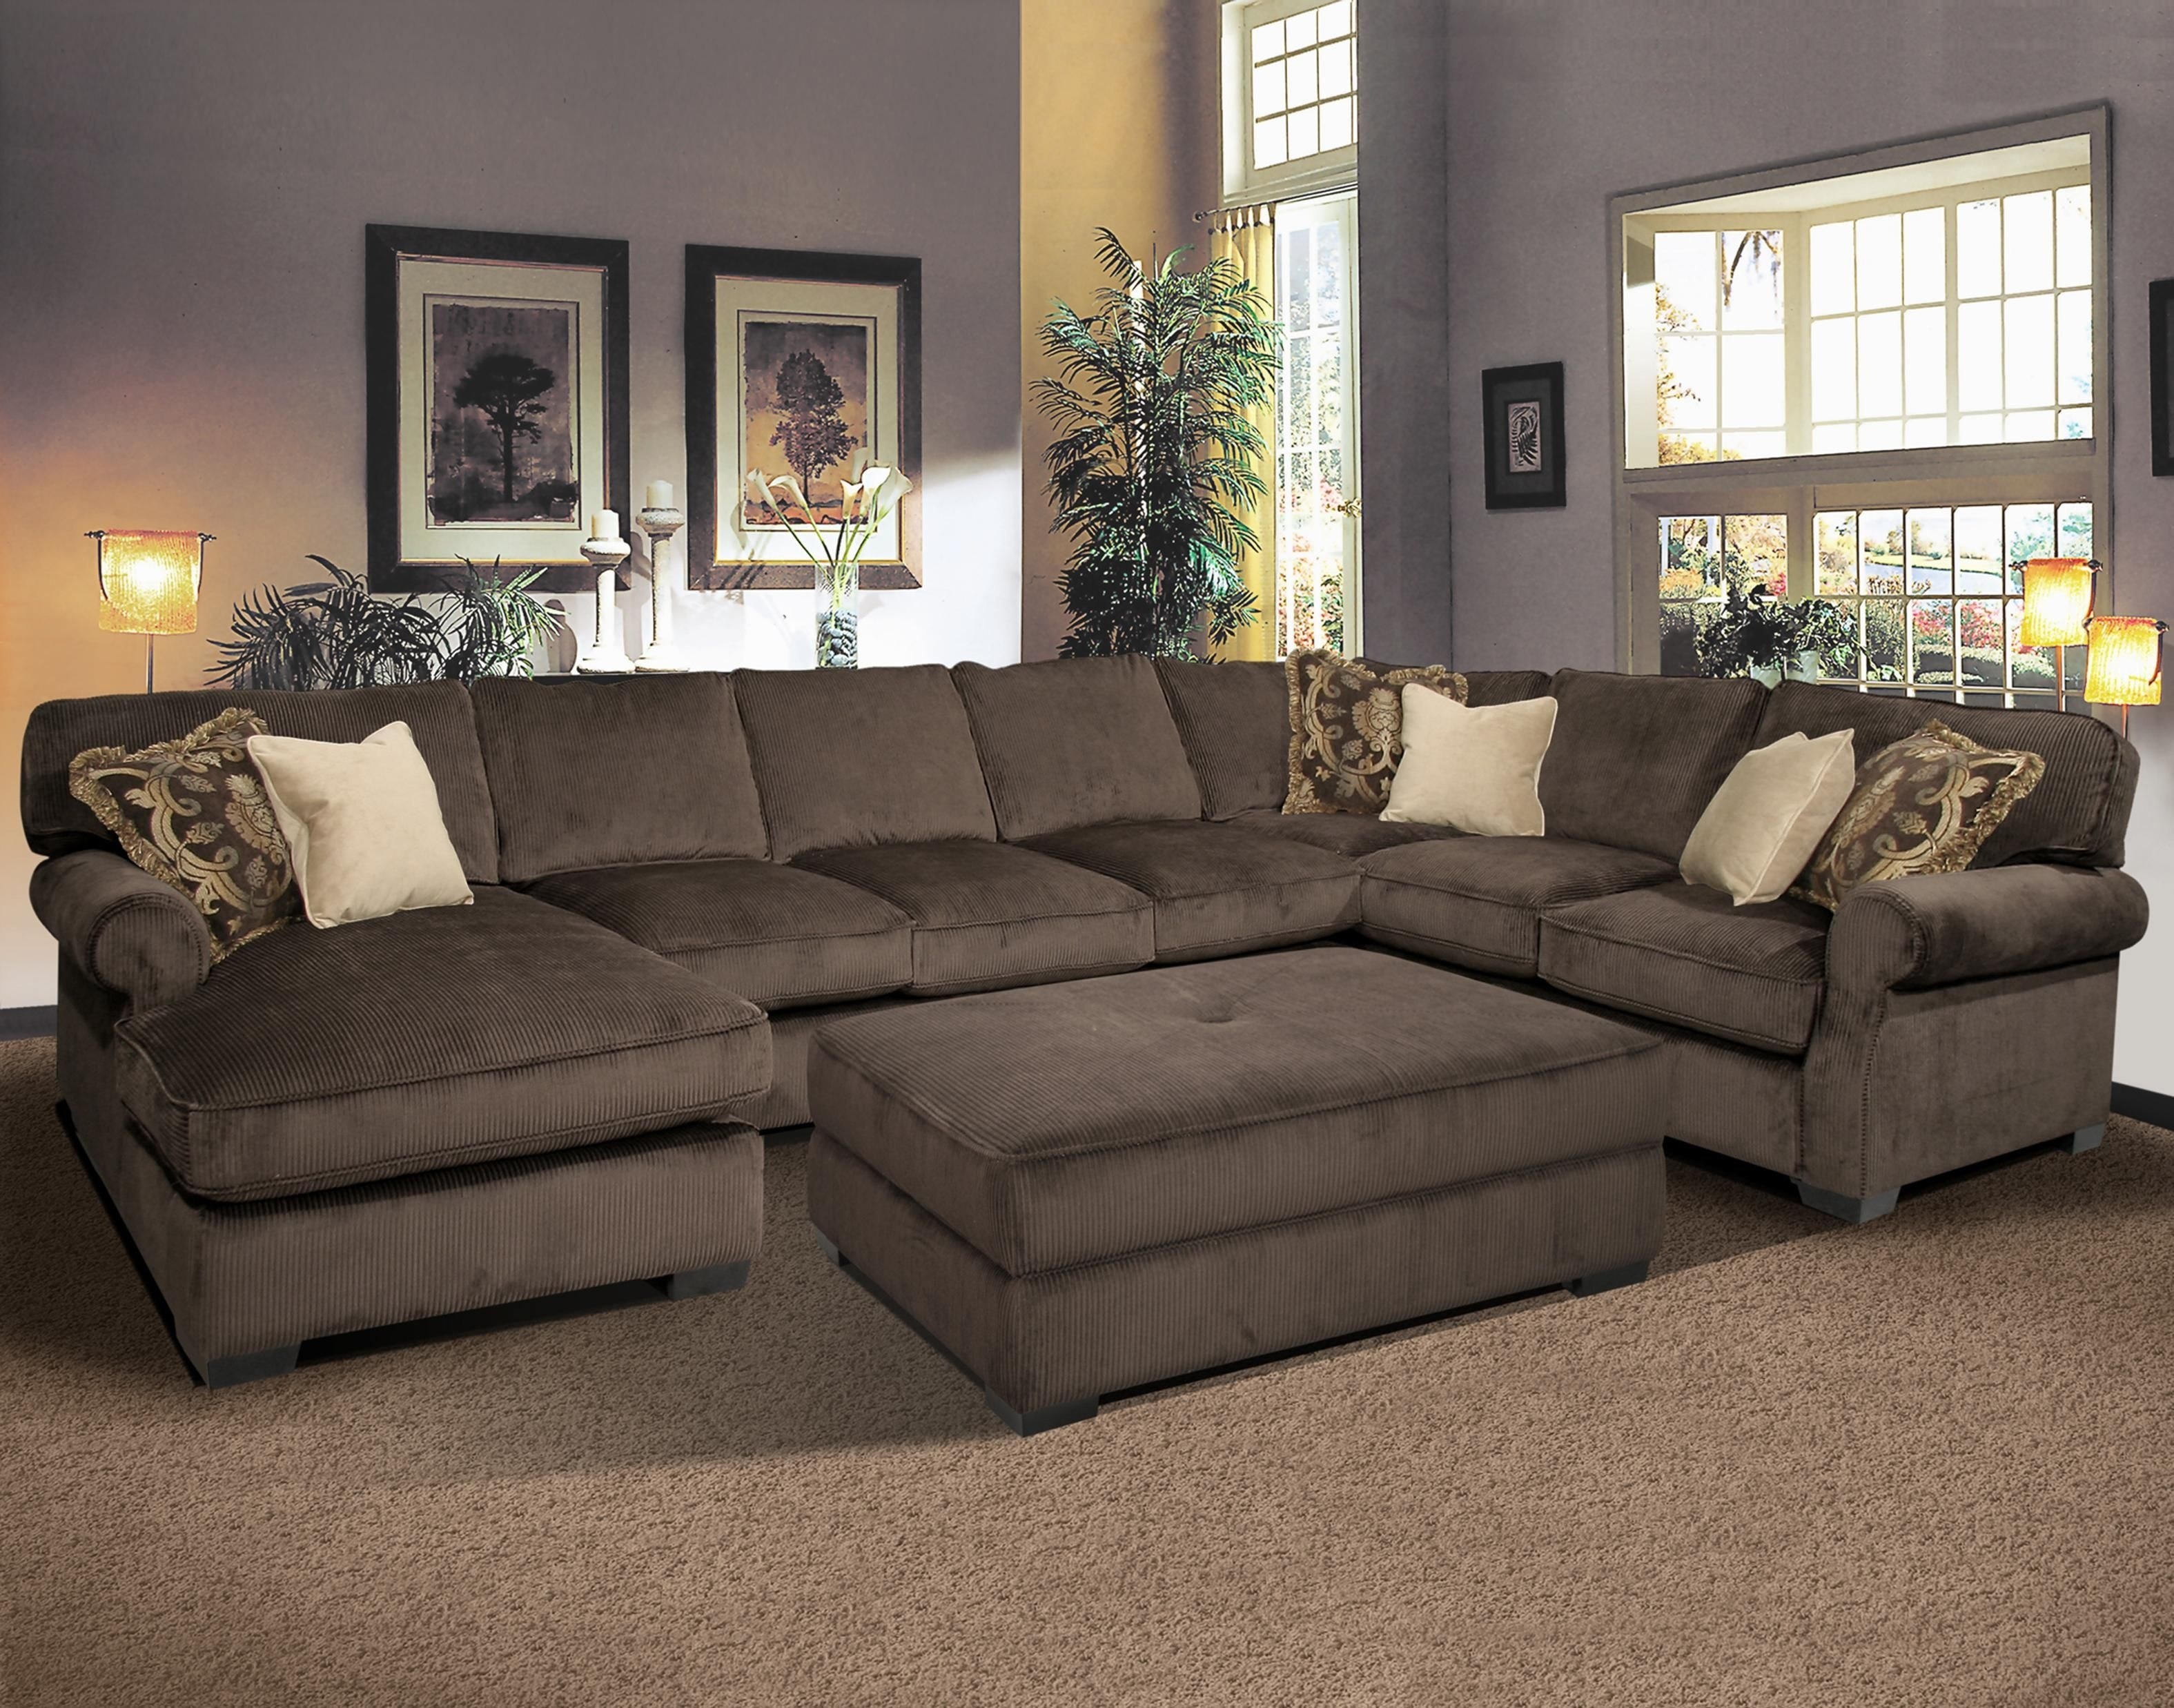 Grand Island Oversized Cocktail Ottoman For Sectional Sofa For Grand Furniture Sectional Sofas (View 1 of 10)